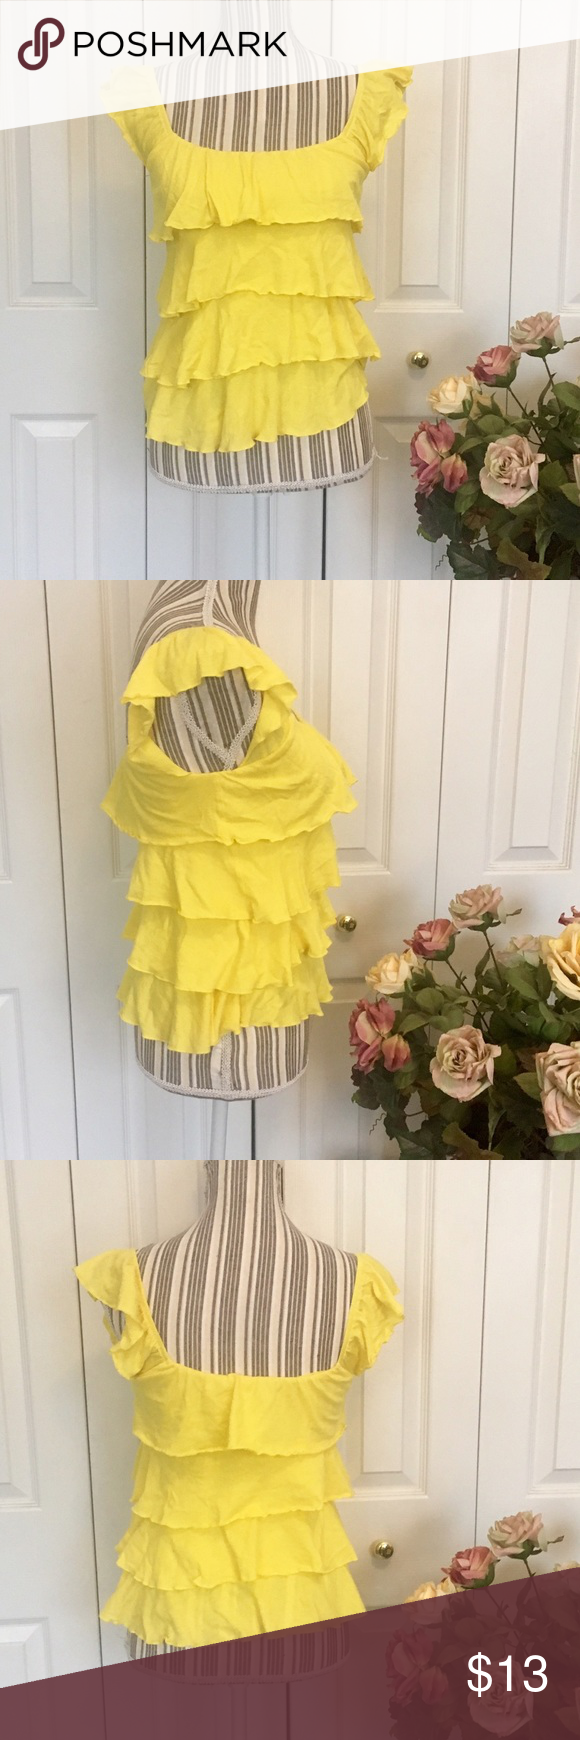 EXPRESS Modal Blend Bright Yellow Ruffle Blouse This Express bright yellow Ruffle tank is modal cotton blend for a pretty and flattering fit.  Size XS, measures 13 inches pit to pit and 23 inches shoulder to hem with lots of stretch.  No holes or pilling. Small discoloration on Ruffle in front as pictured. Express Tops